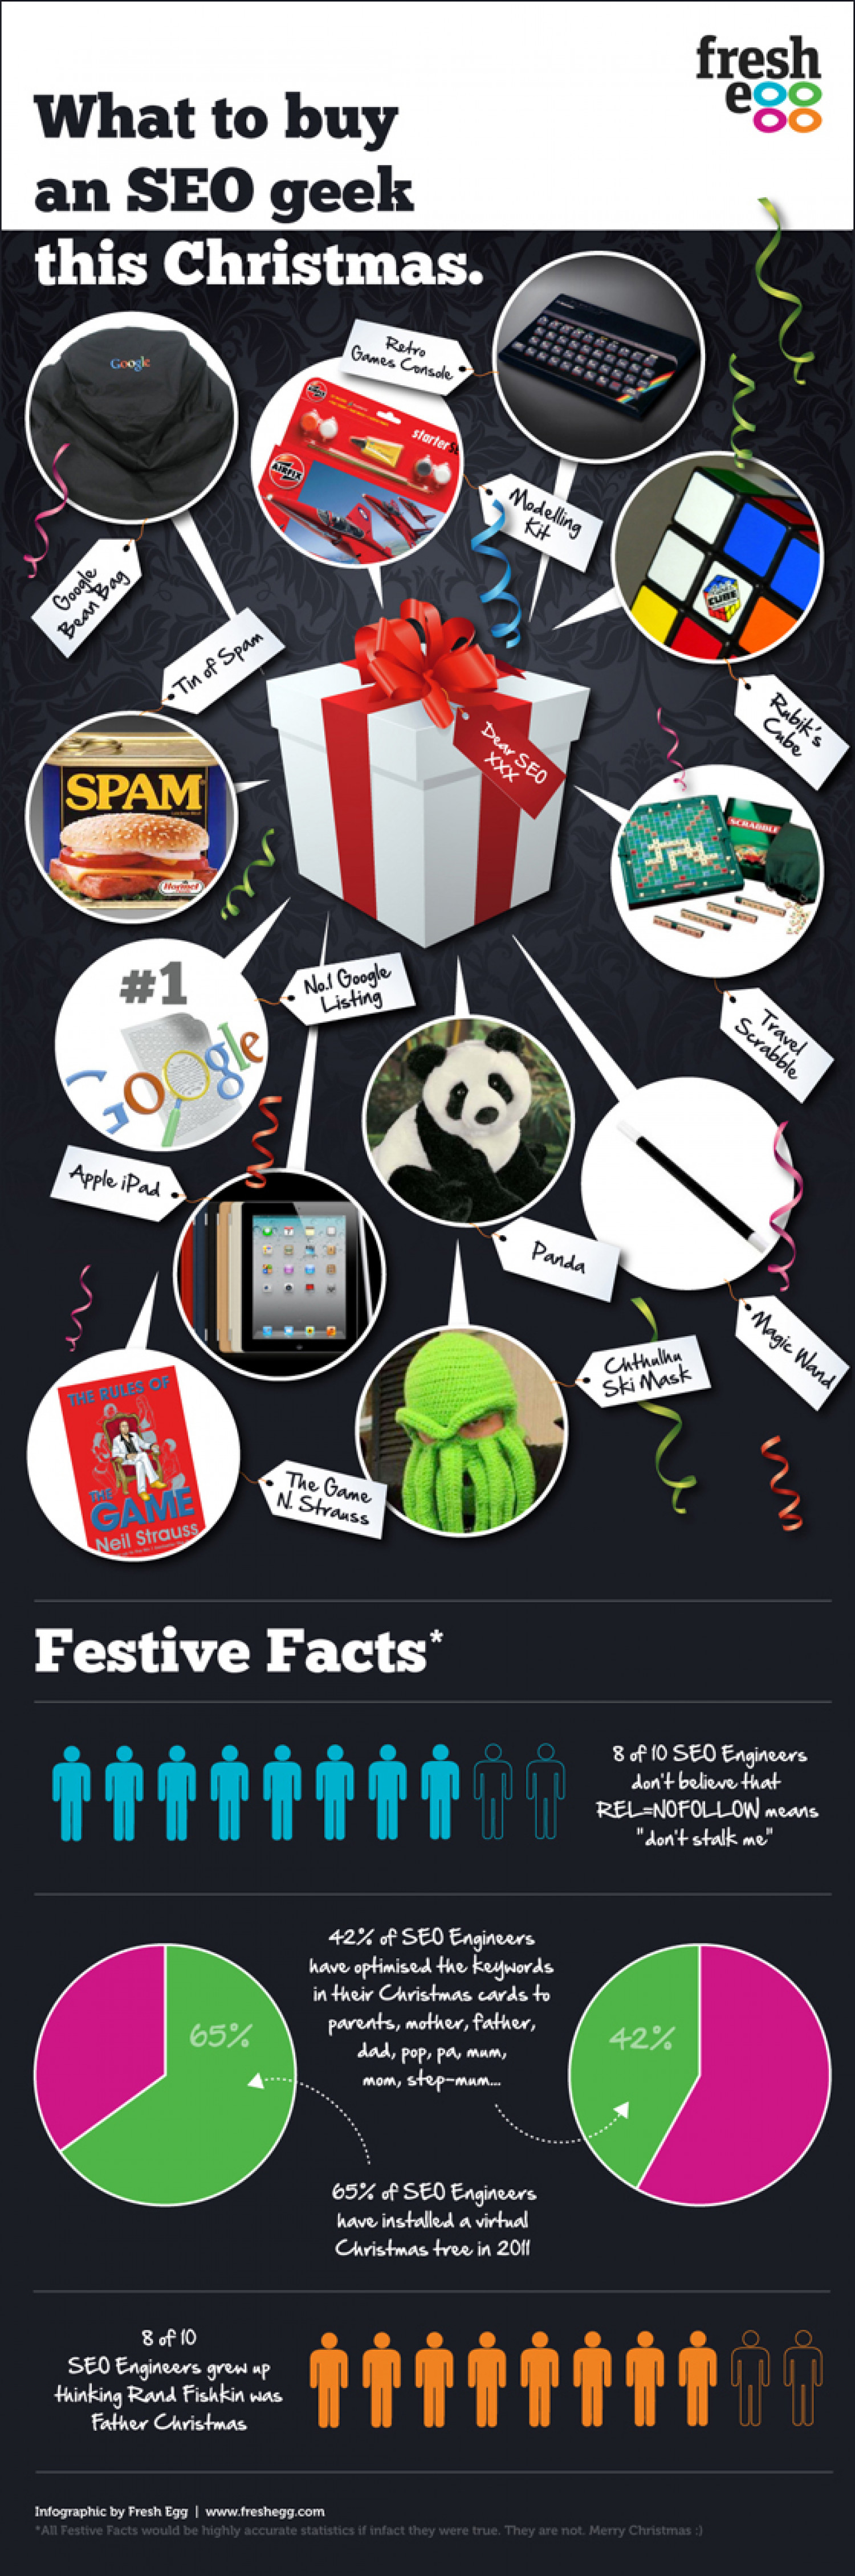 Festive Facts for SEO's - FUN! Infographic